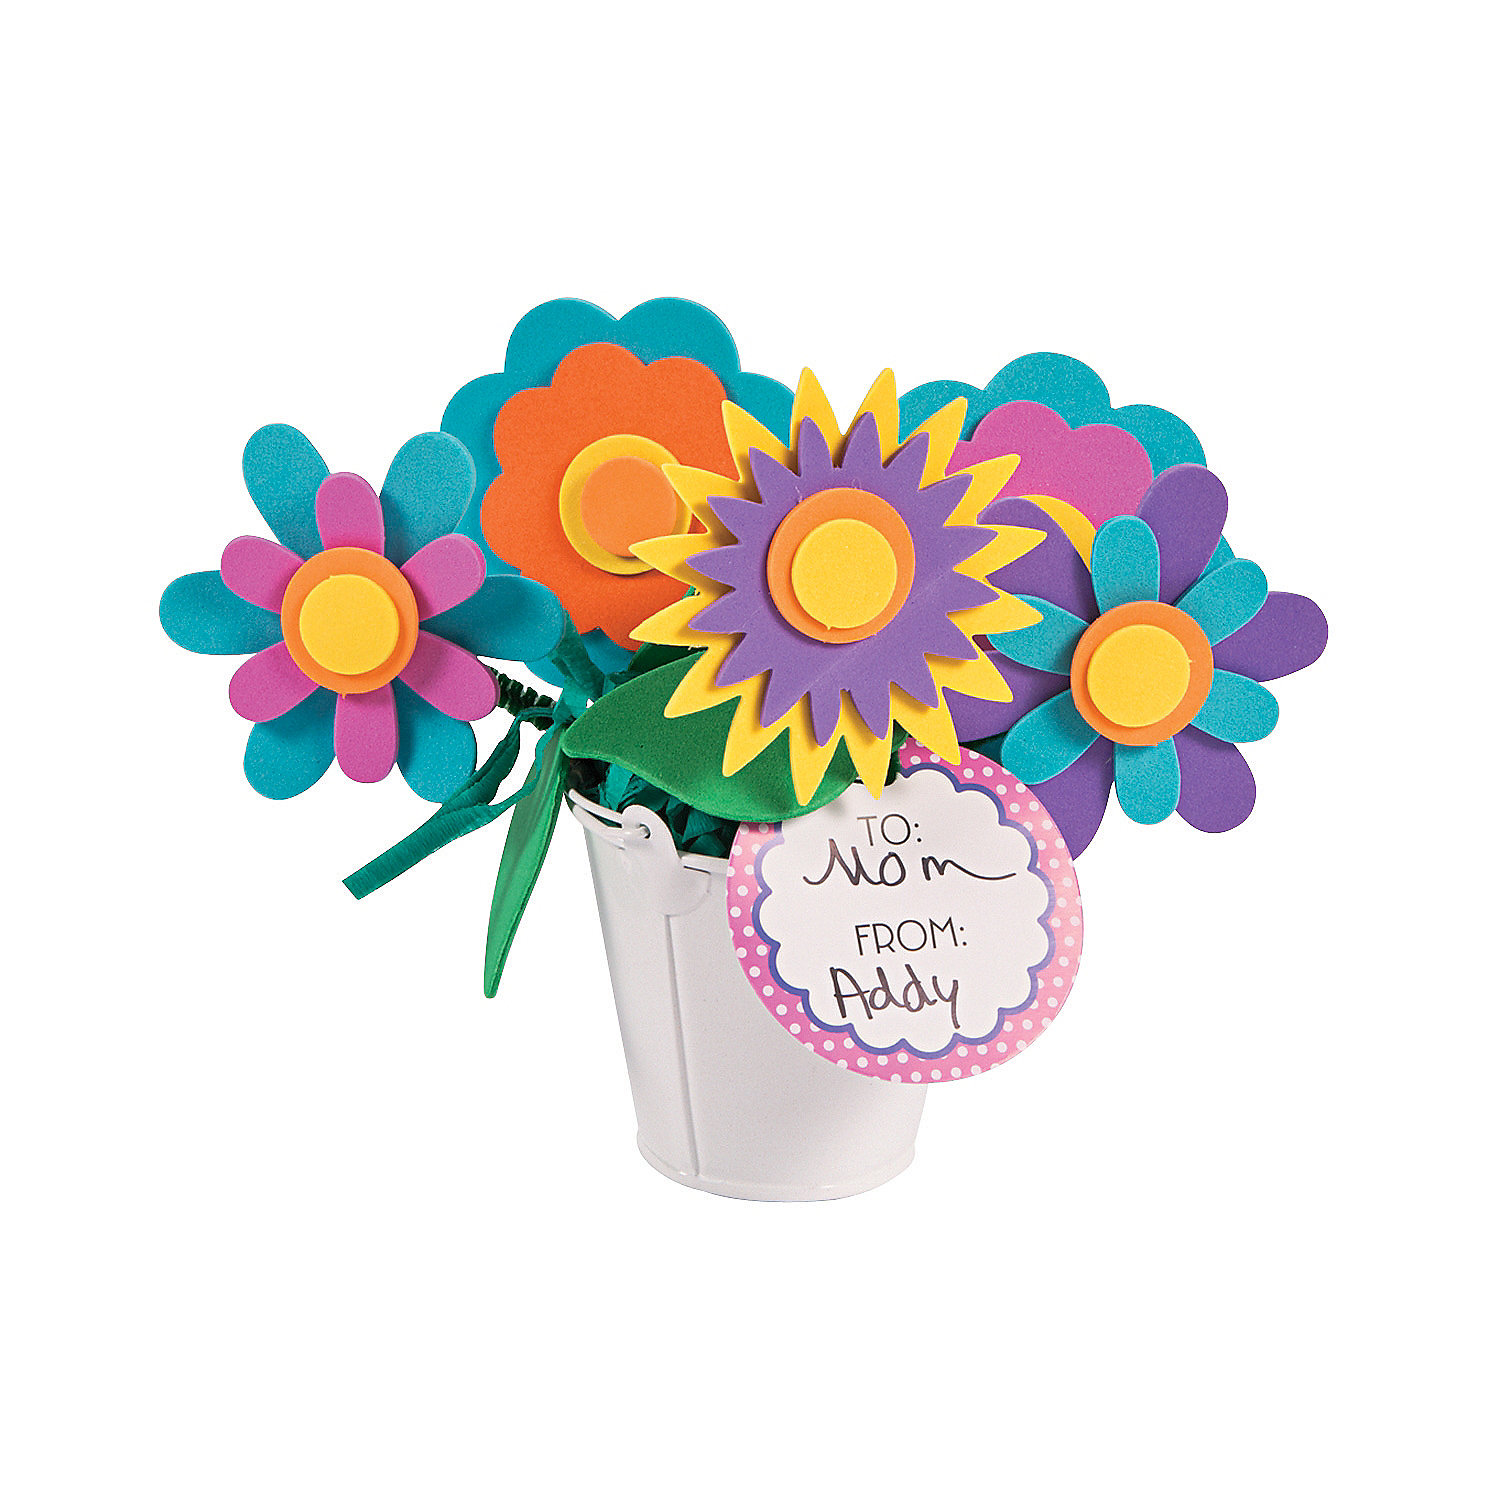 Flowers for mom bouquet craft kit oriental trading for Mother s day craft kits